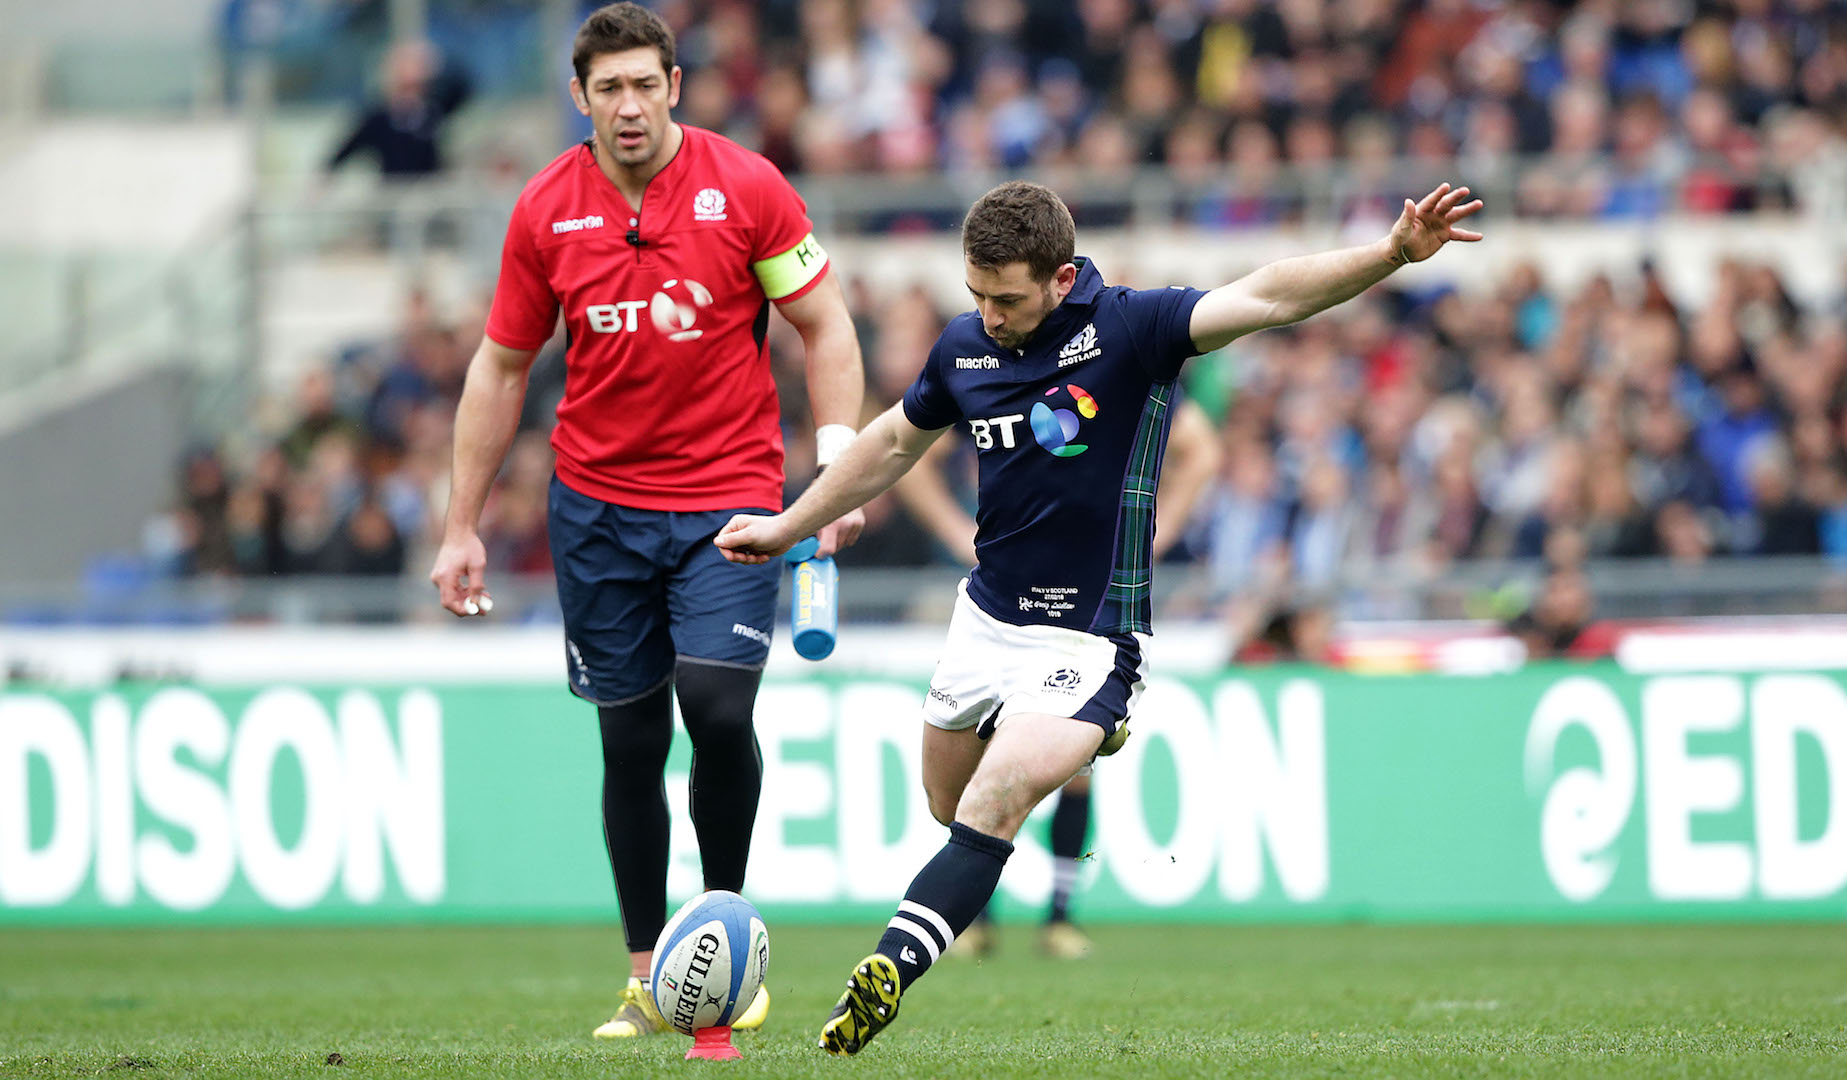 LionsWatch: Late Laidlaw penalty gives Scotland victory